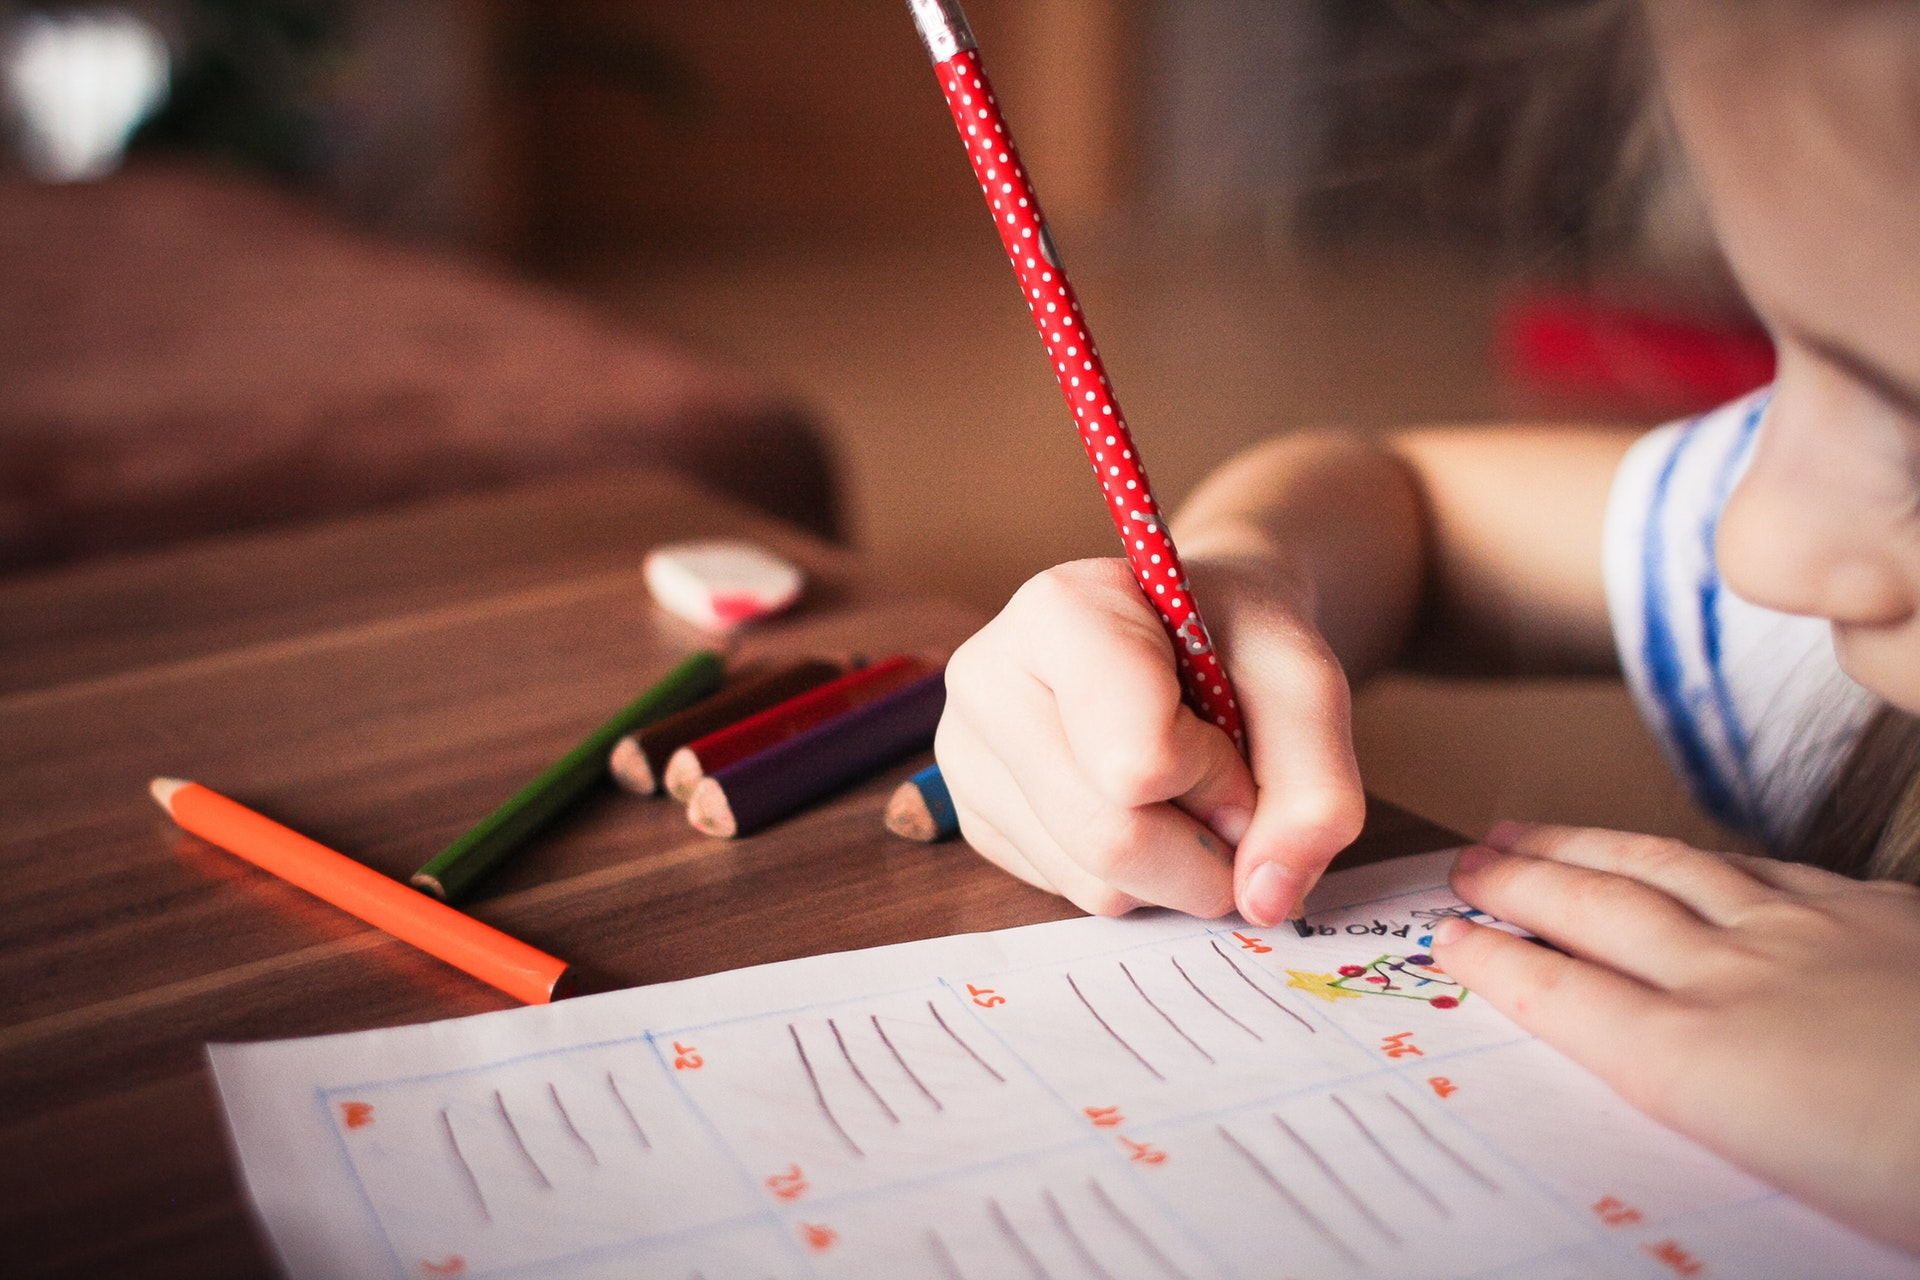 What Does Dyslexia Look Like In Preschool And Primary School Children?